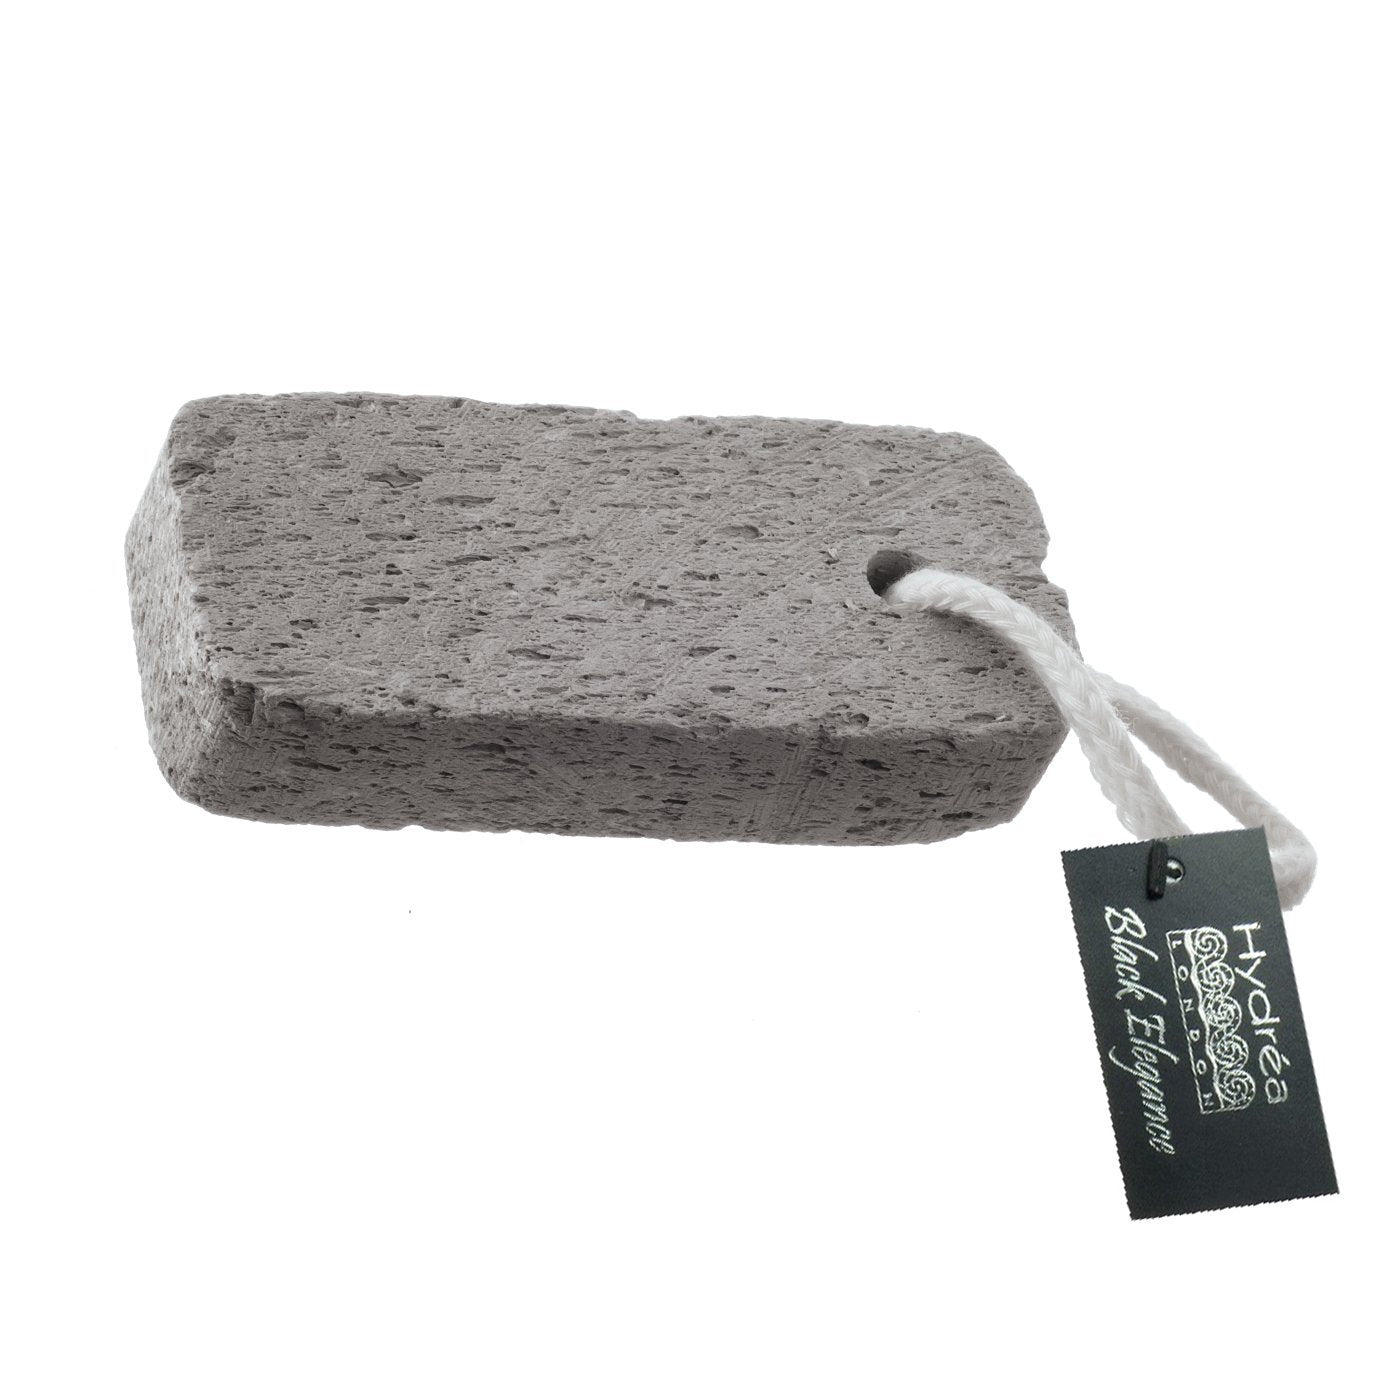 Accessories - Natural Pumice Stone With Rope